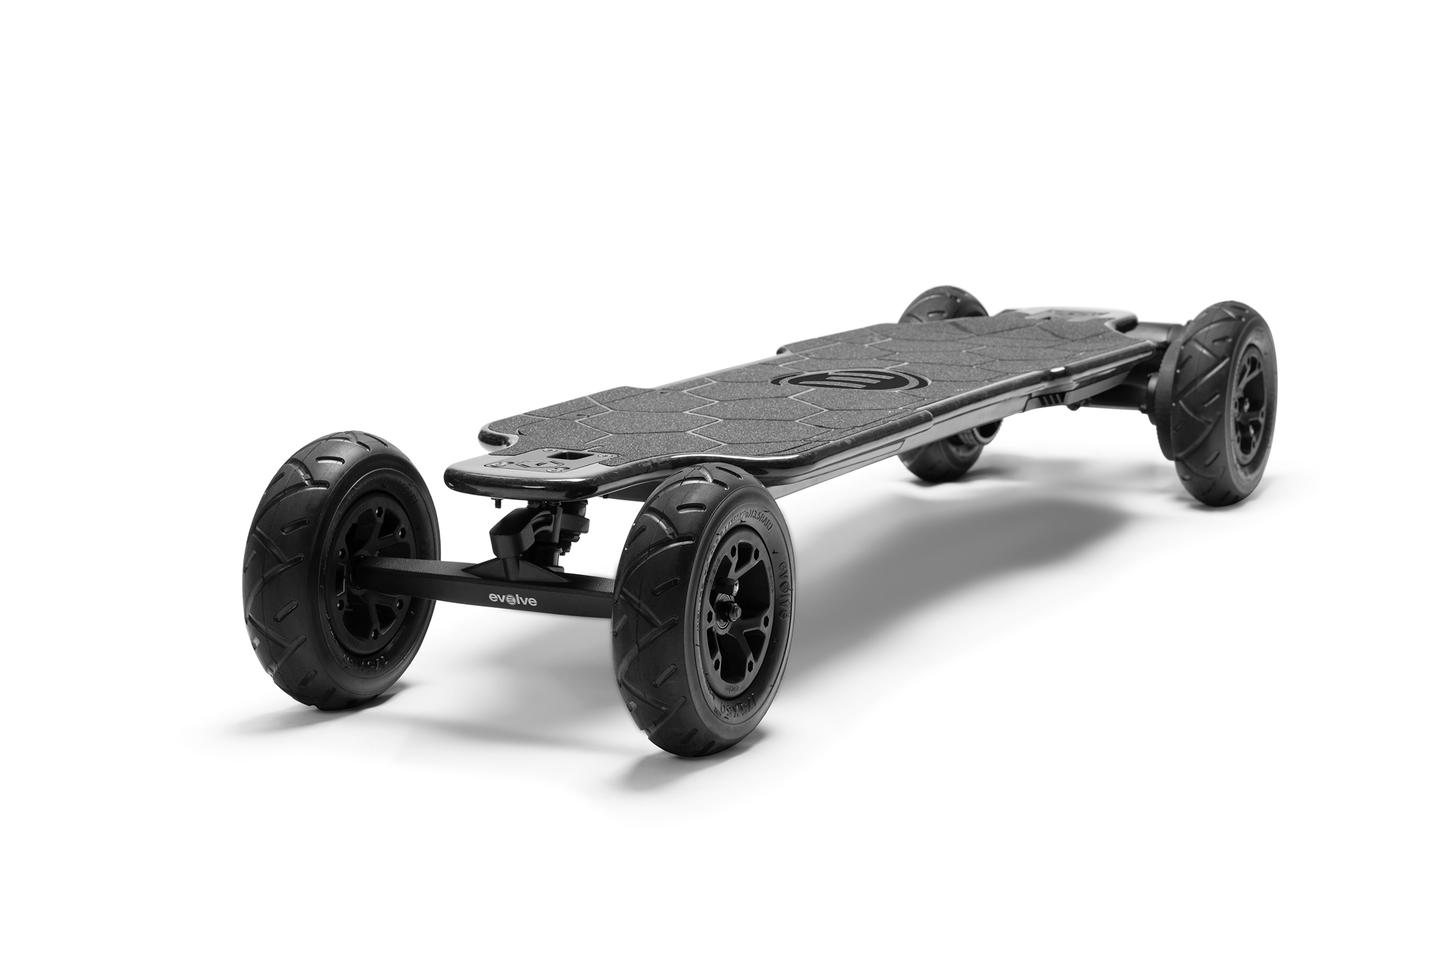 Pricing for the Hadean Carbon Street starts at US$2,899